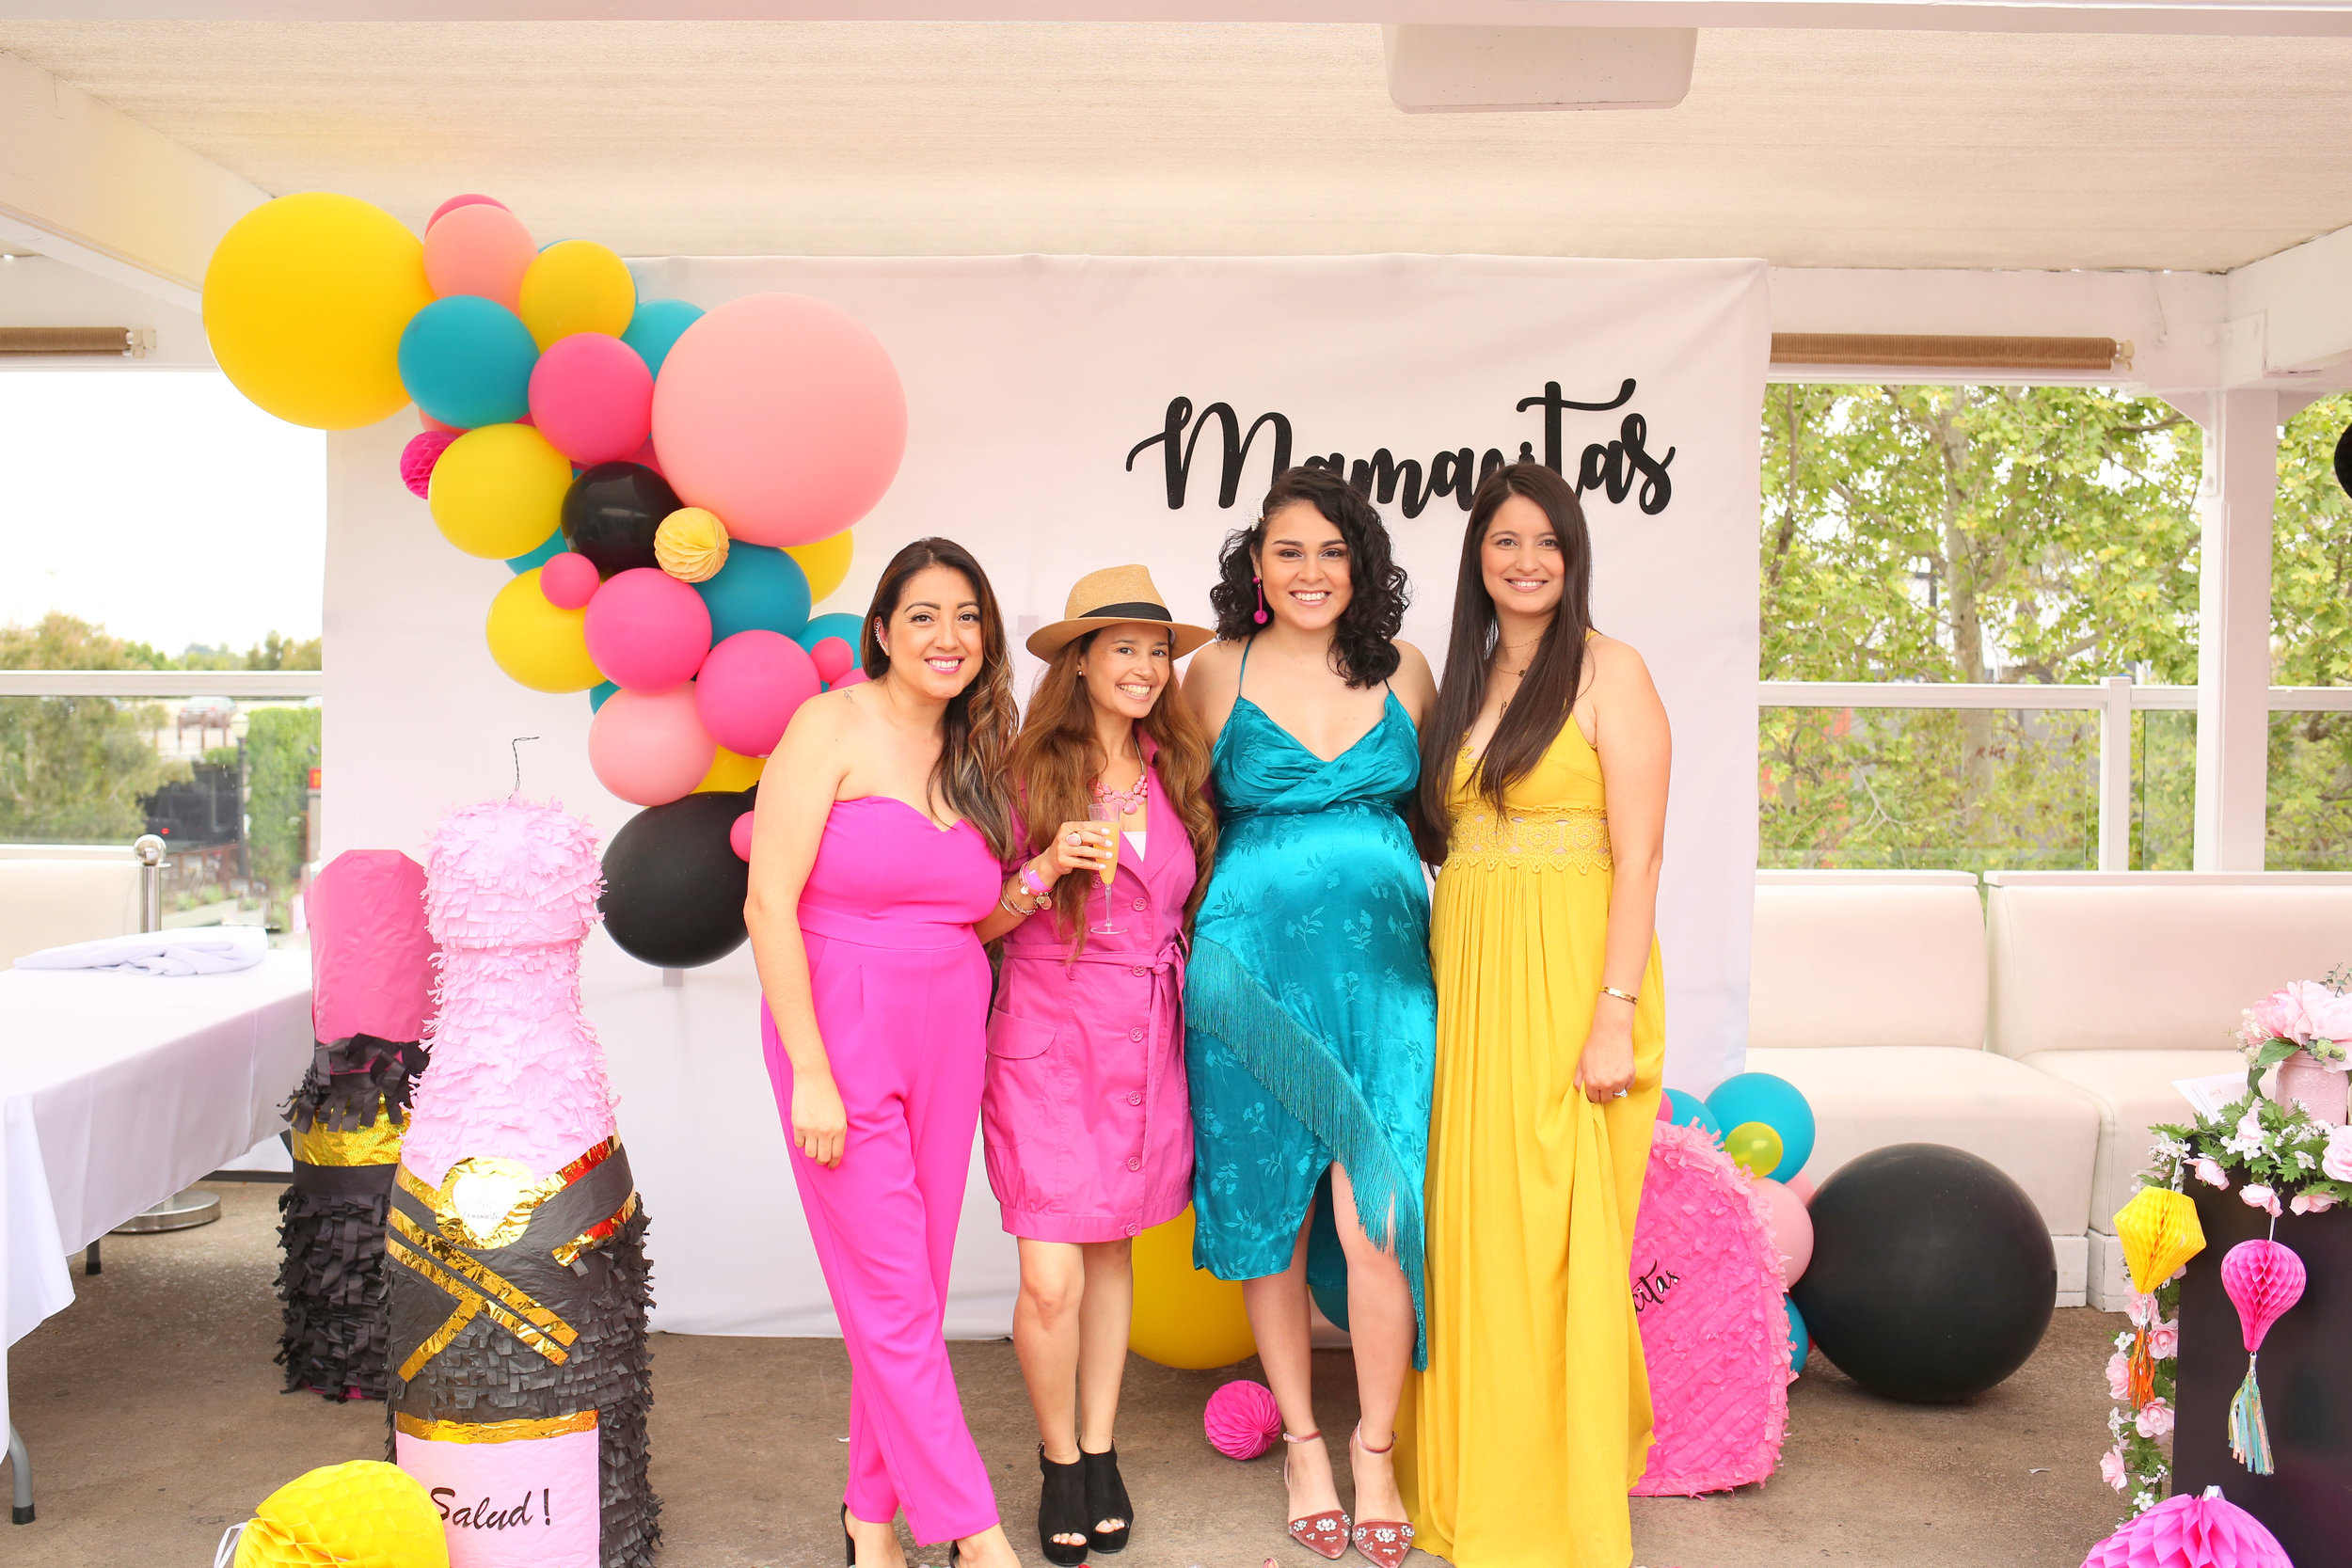 Cynthia (founder of  Sweets with Love  is pictured here with the L.A Mamacitas team.